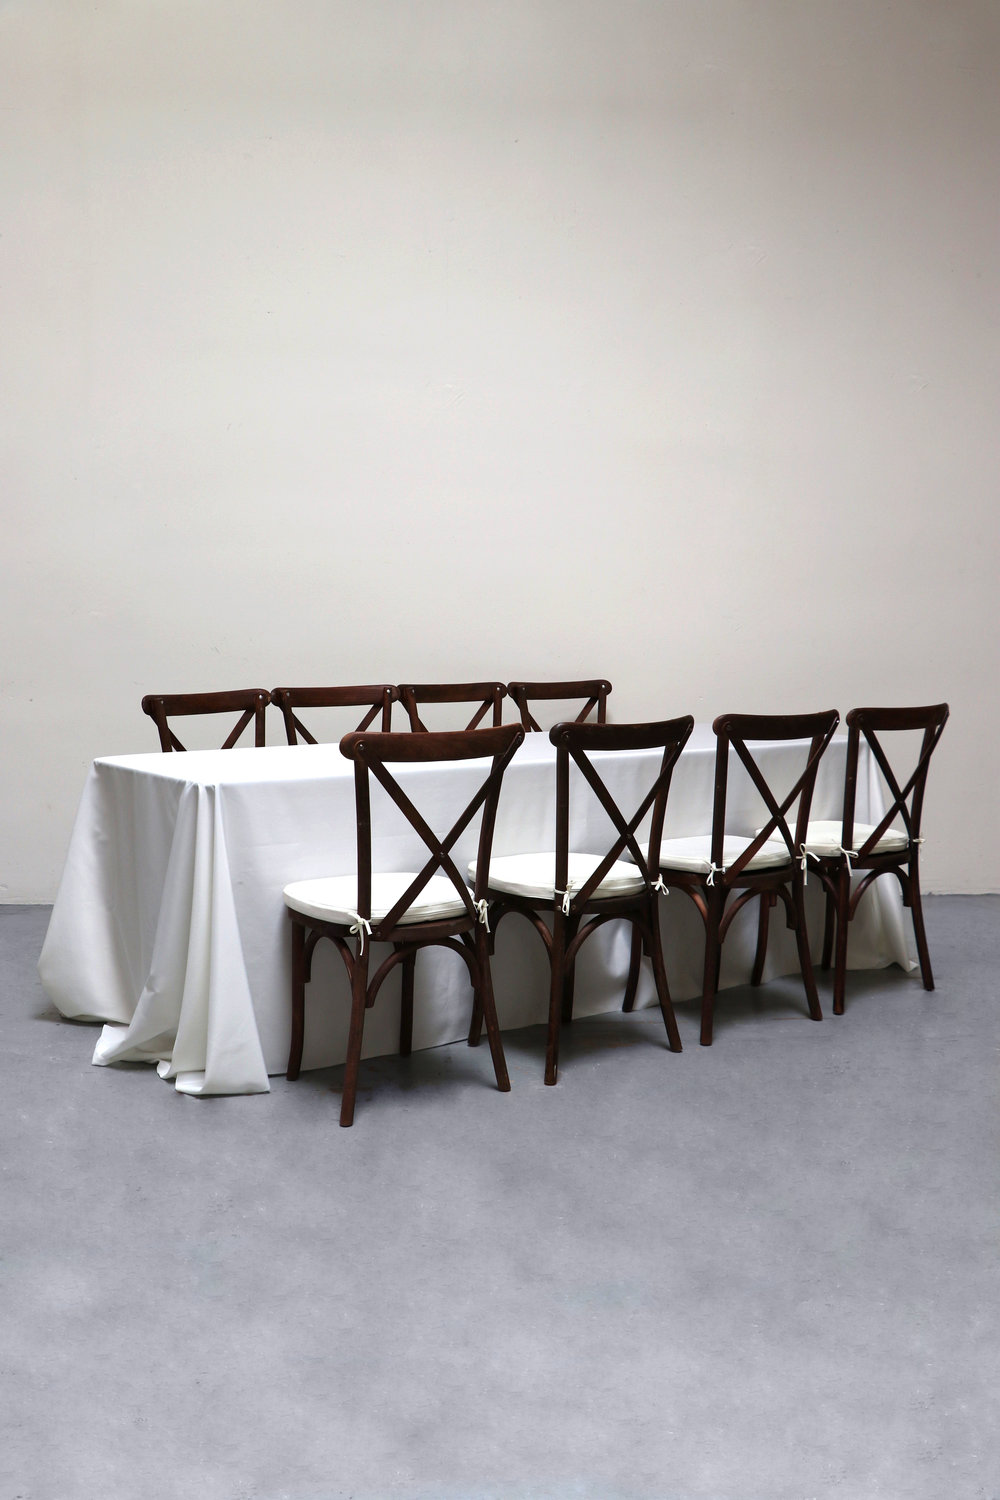 1 Banquet Table with 8 Cross-Back Chairs $80